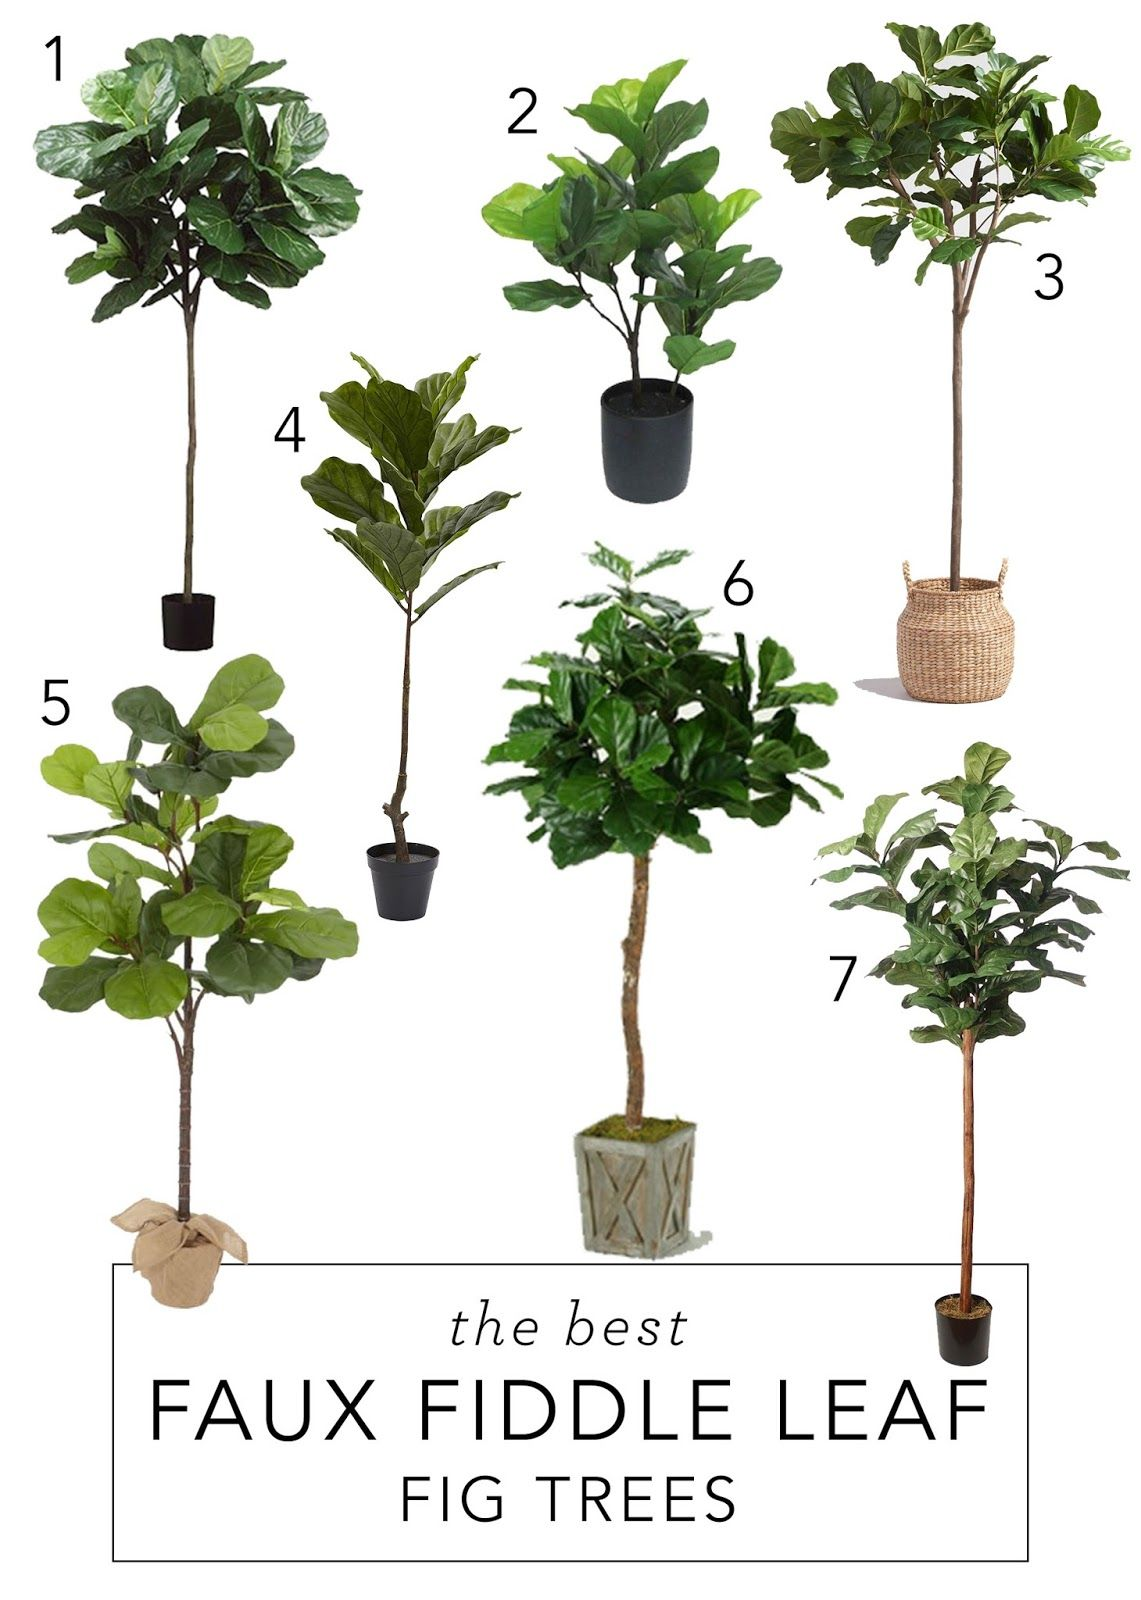 12th and white the best faux fiddle leaf fig trees and where we got